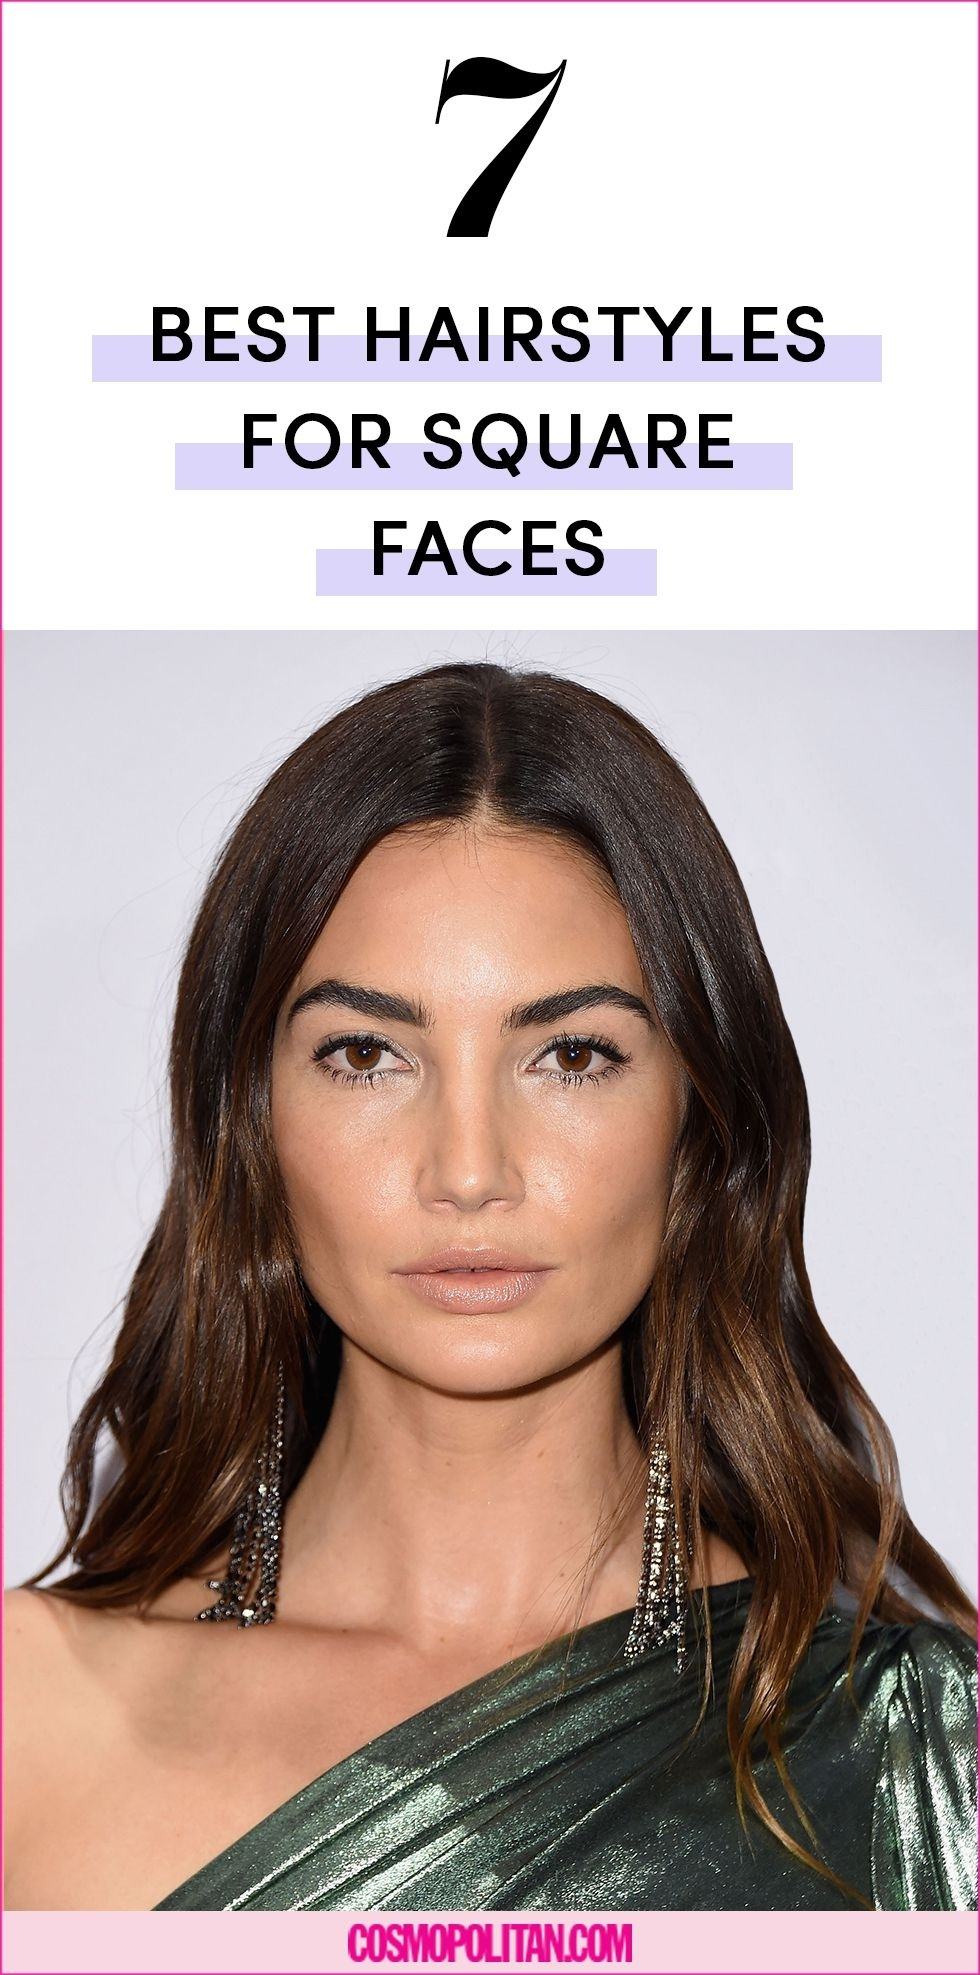 The 7 Best Hairstyles For Square Face Shapes within Beat Haircut For Square Face